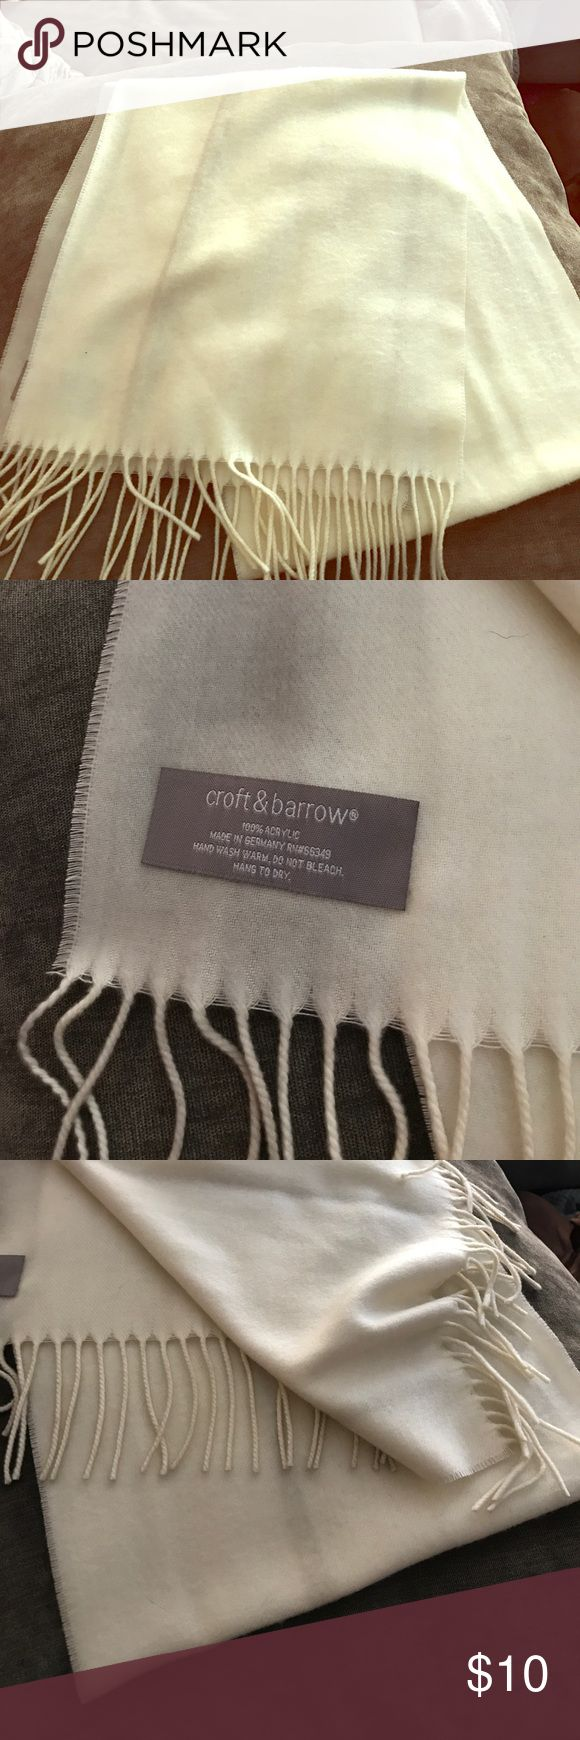 Insanely soft cream scarf NWOT, never been worn cream scarf with fringe details. So so soft. croft & barrow Accessories Scarves & Wraps